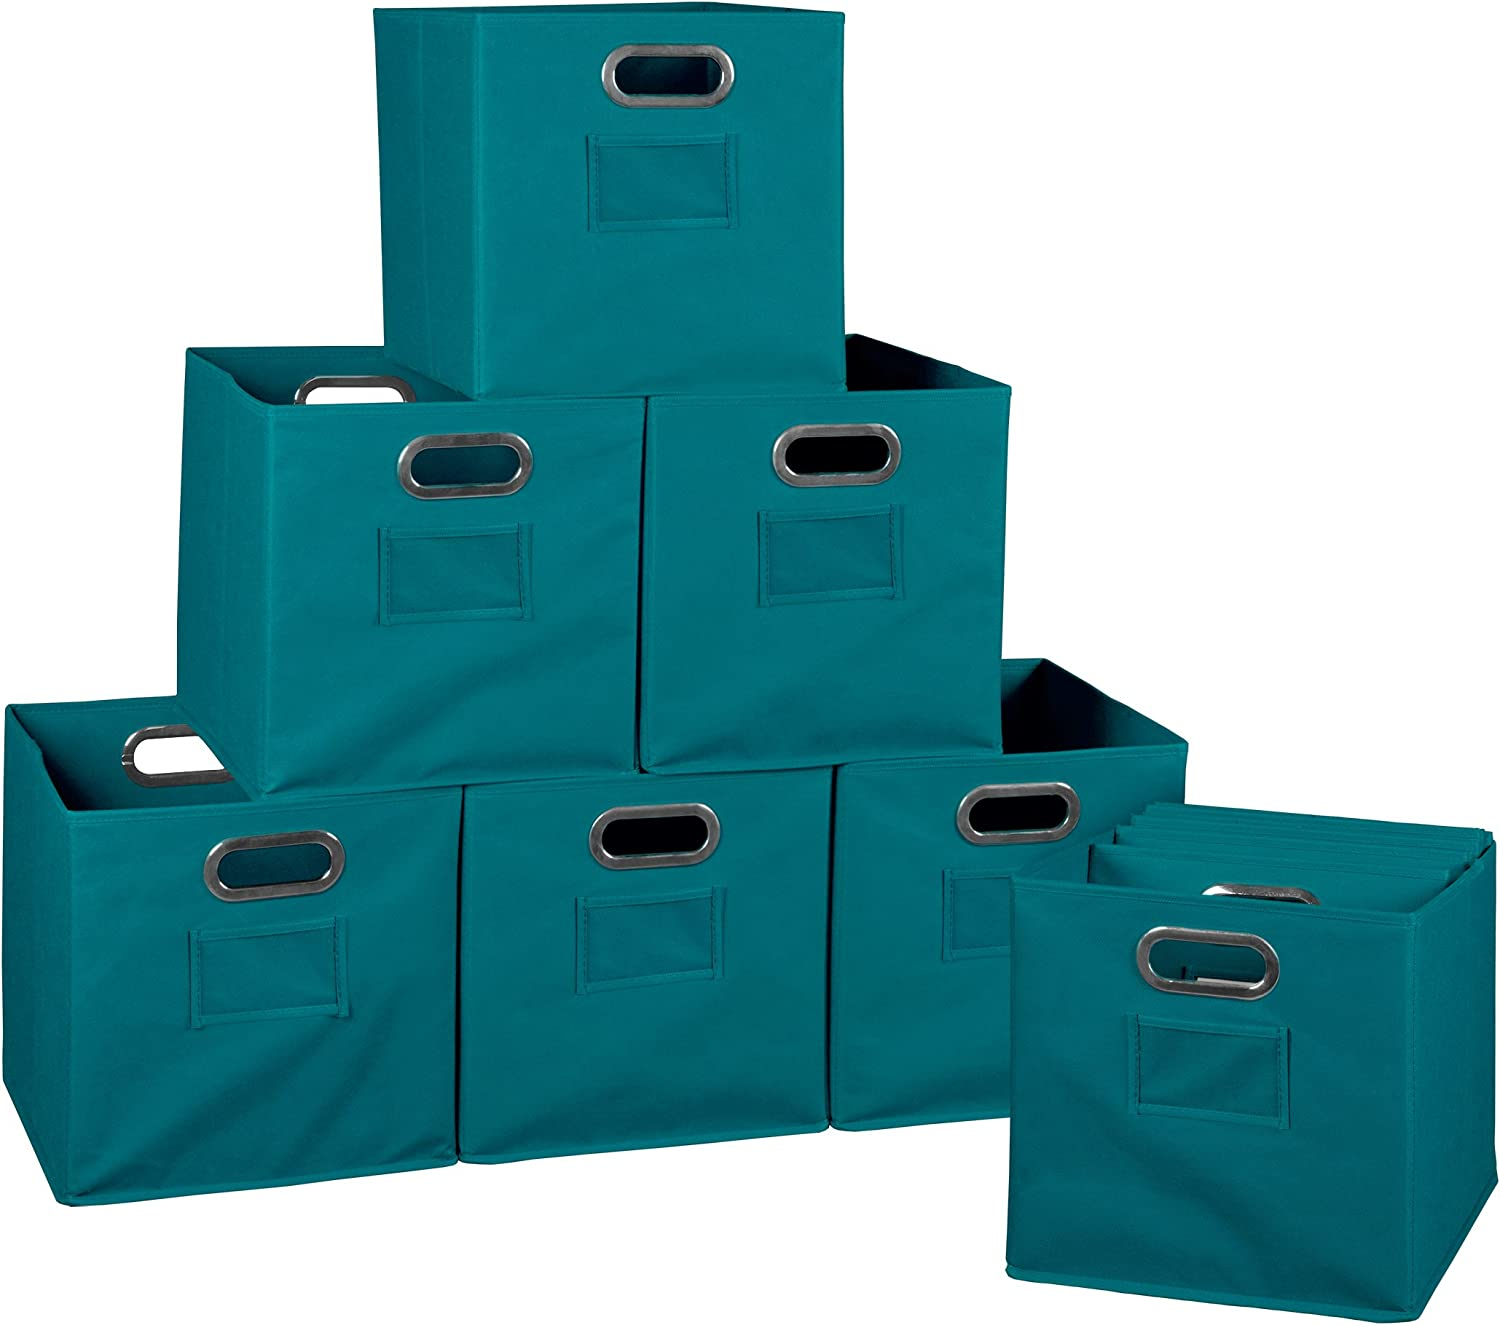 Niche Set of 12 Cubo Foldable Fabric Bins- Teal